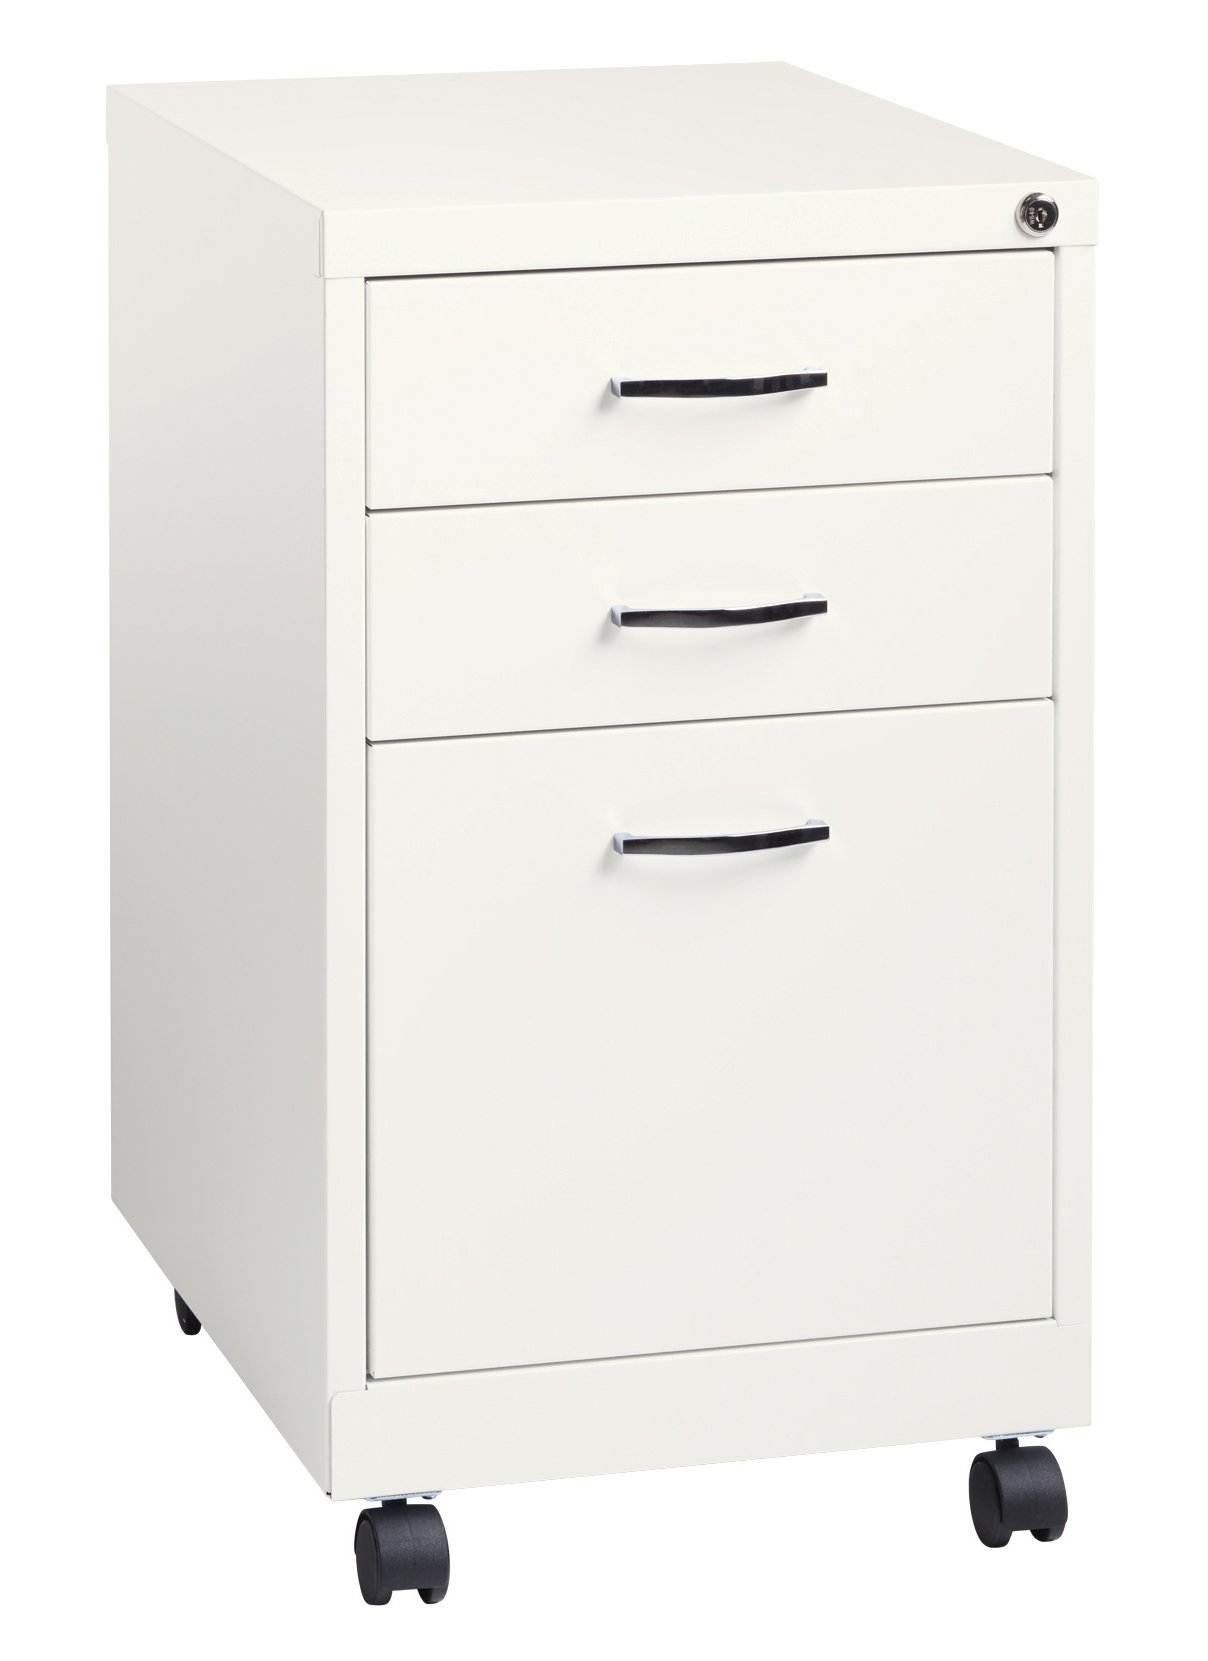 Space Solutions 19'' Deep Metal Pedestal File Cabinet with Wheels - Home Office Collection - White